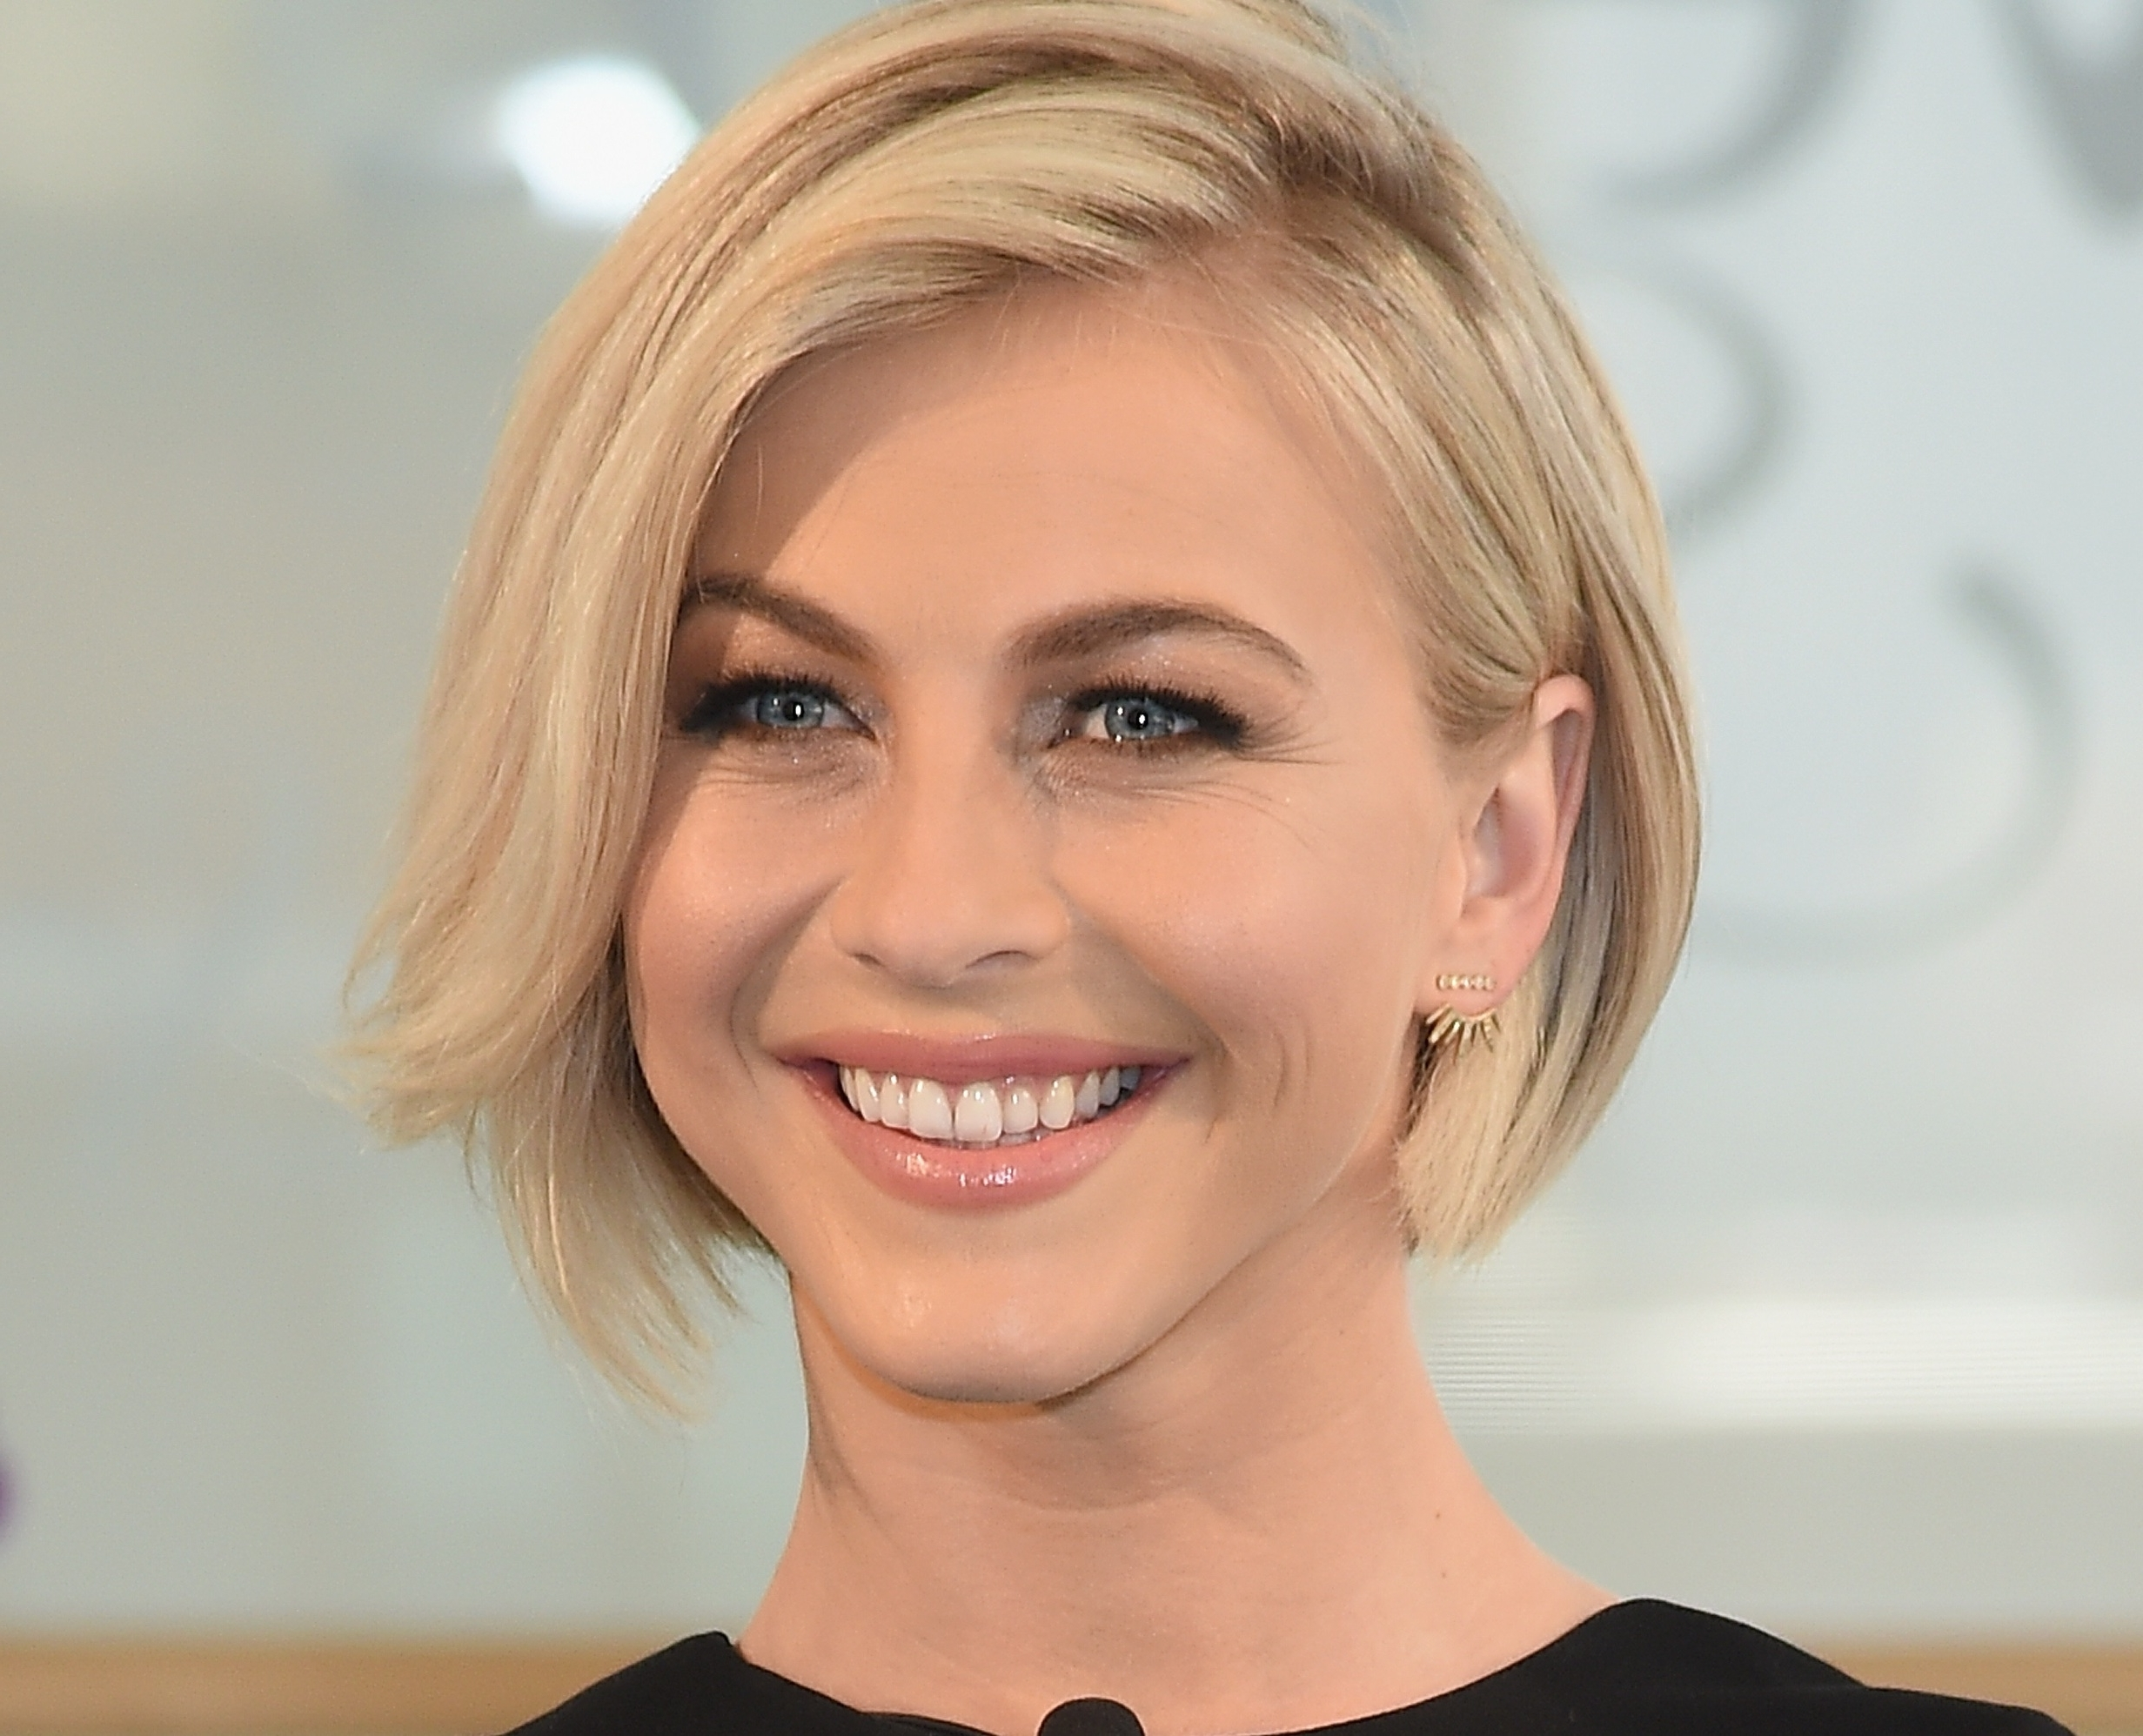 Top 16 Of Julianne Hough Pixie Hairstyles